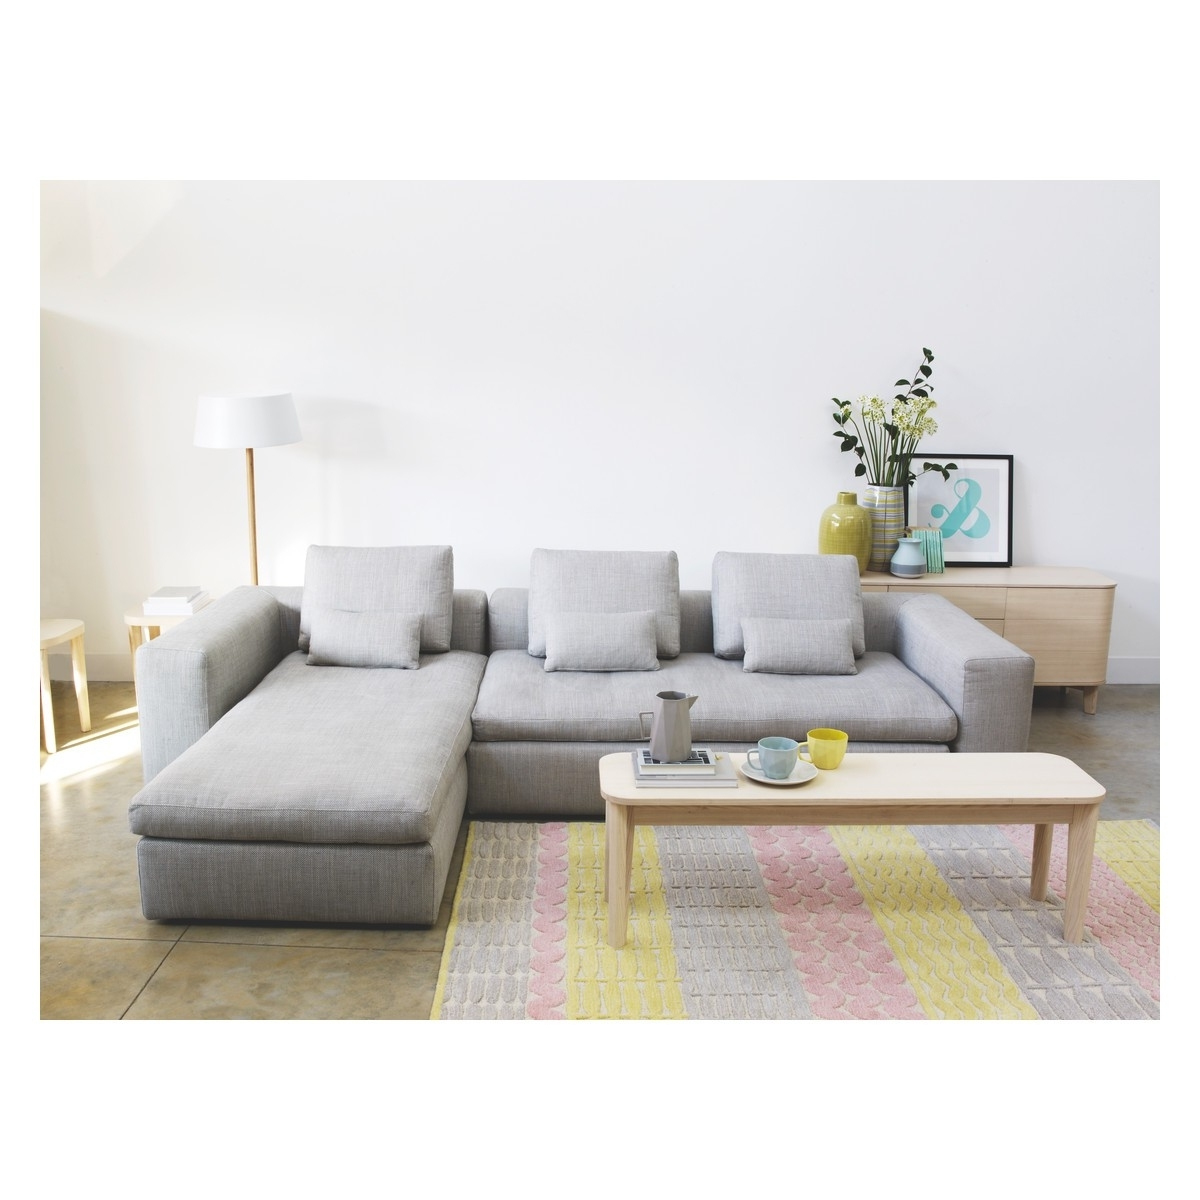 Famous Grey Chaise Sofas Intended For Sofas: Classic Meets Contemporary Chaise Sofa Bed For Ideal Living (View 7 of 15)